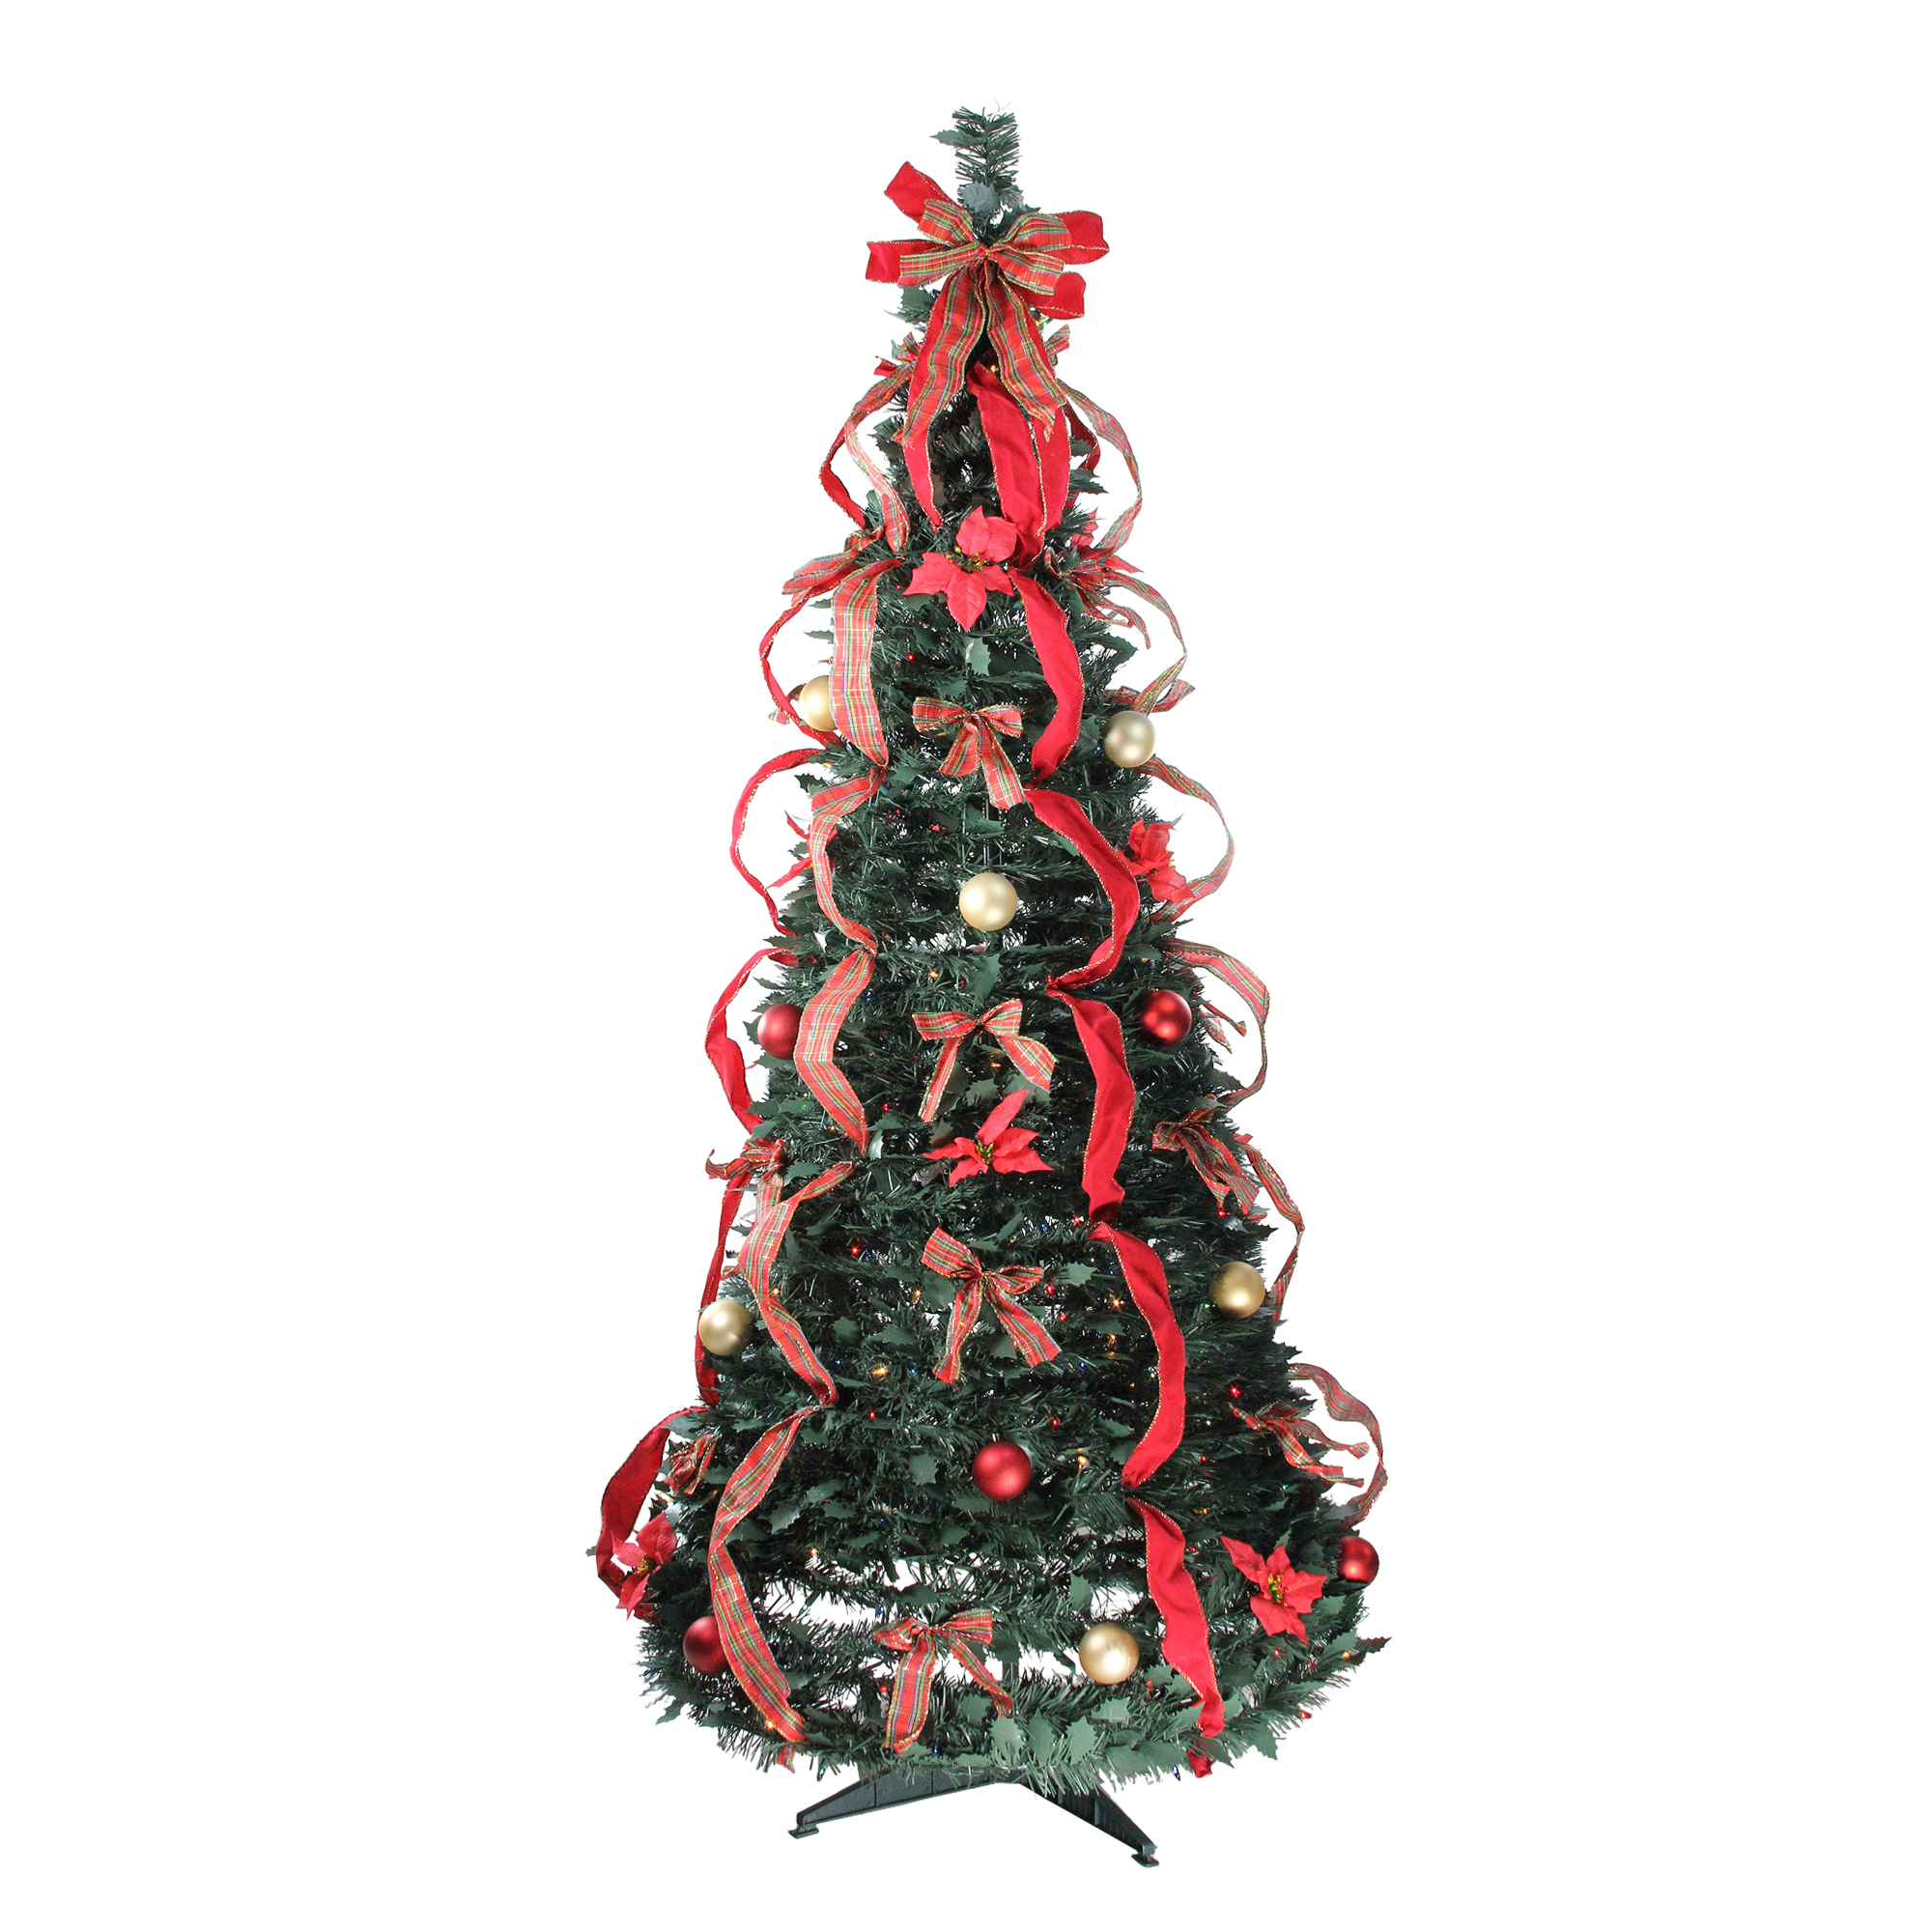 Northlight 6' Prelit Artificial Christmas Tree Gold and Red Plaid Decorated Pop-Up - Multi-Color Lights